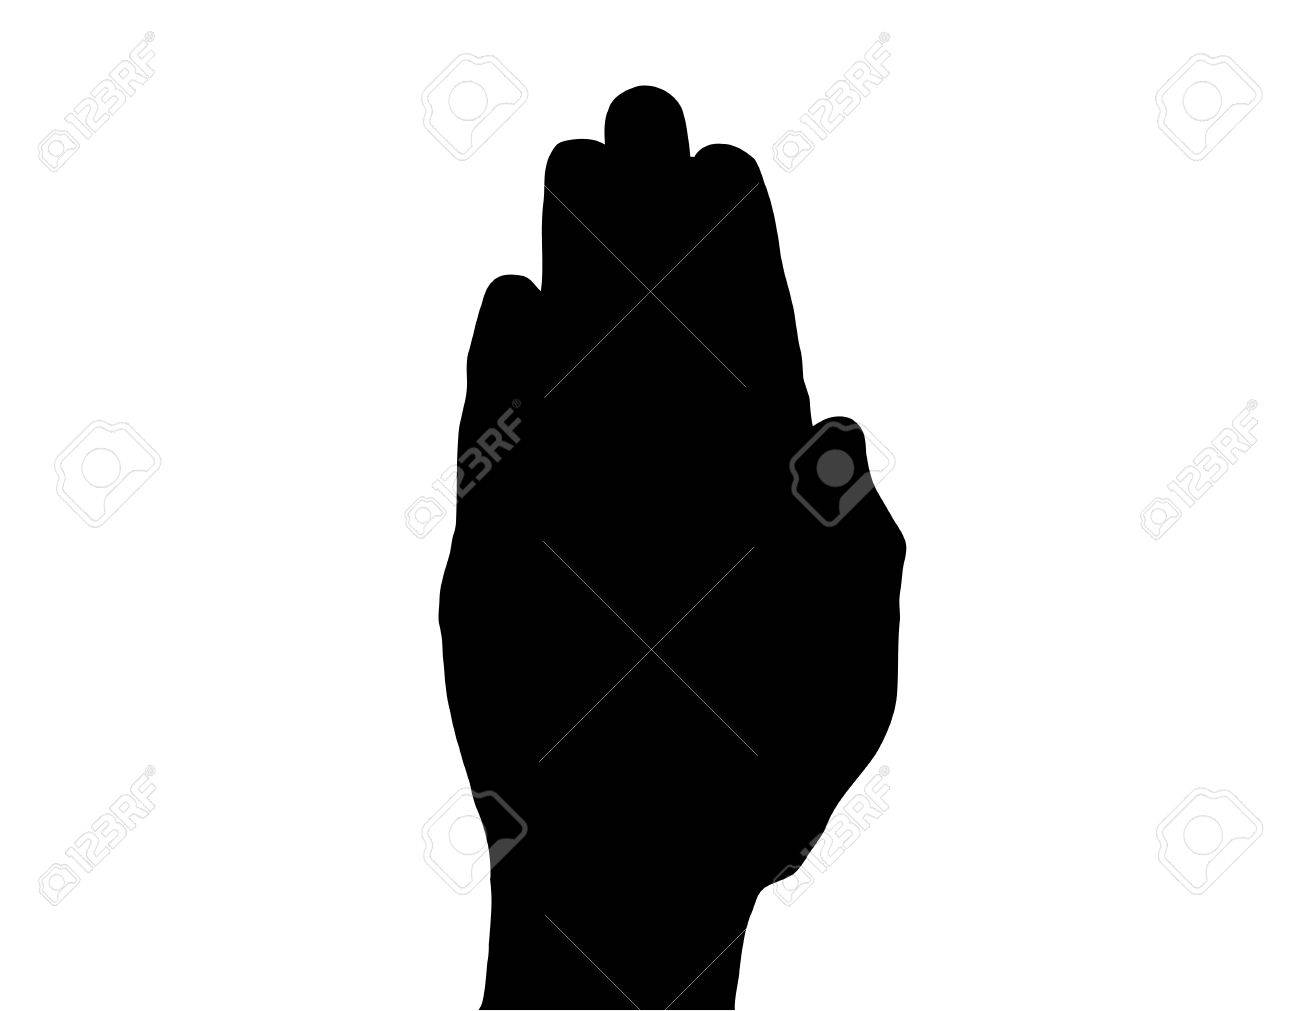 Silhouette Vector Stop Hand on White Stock Vector - 8891671